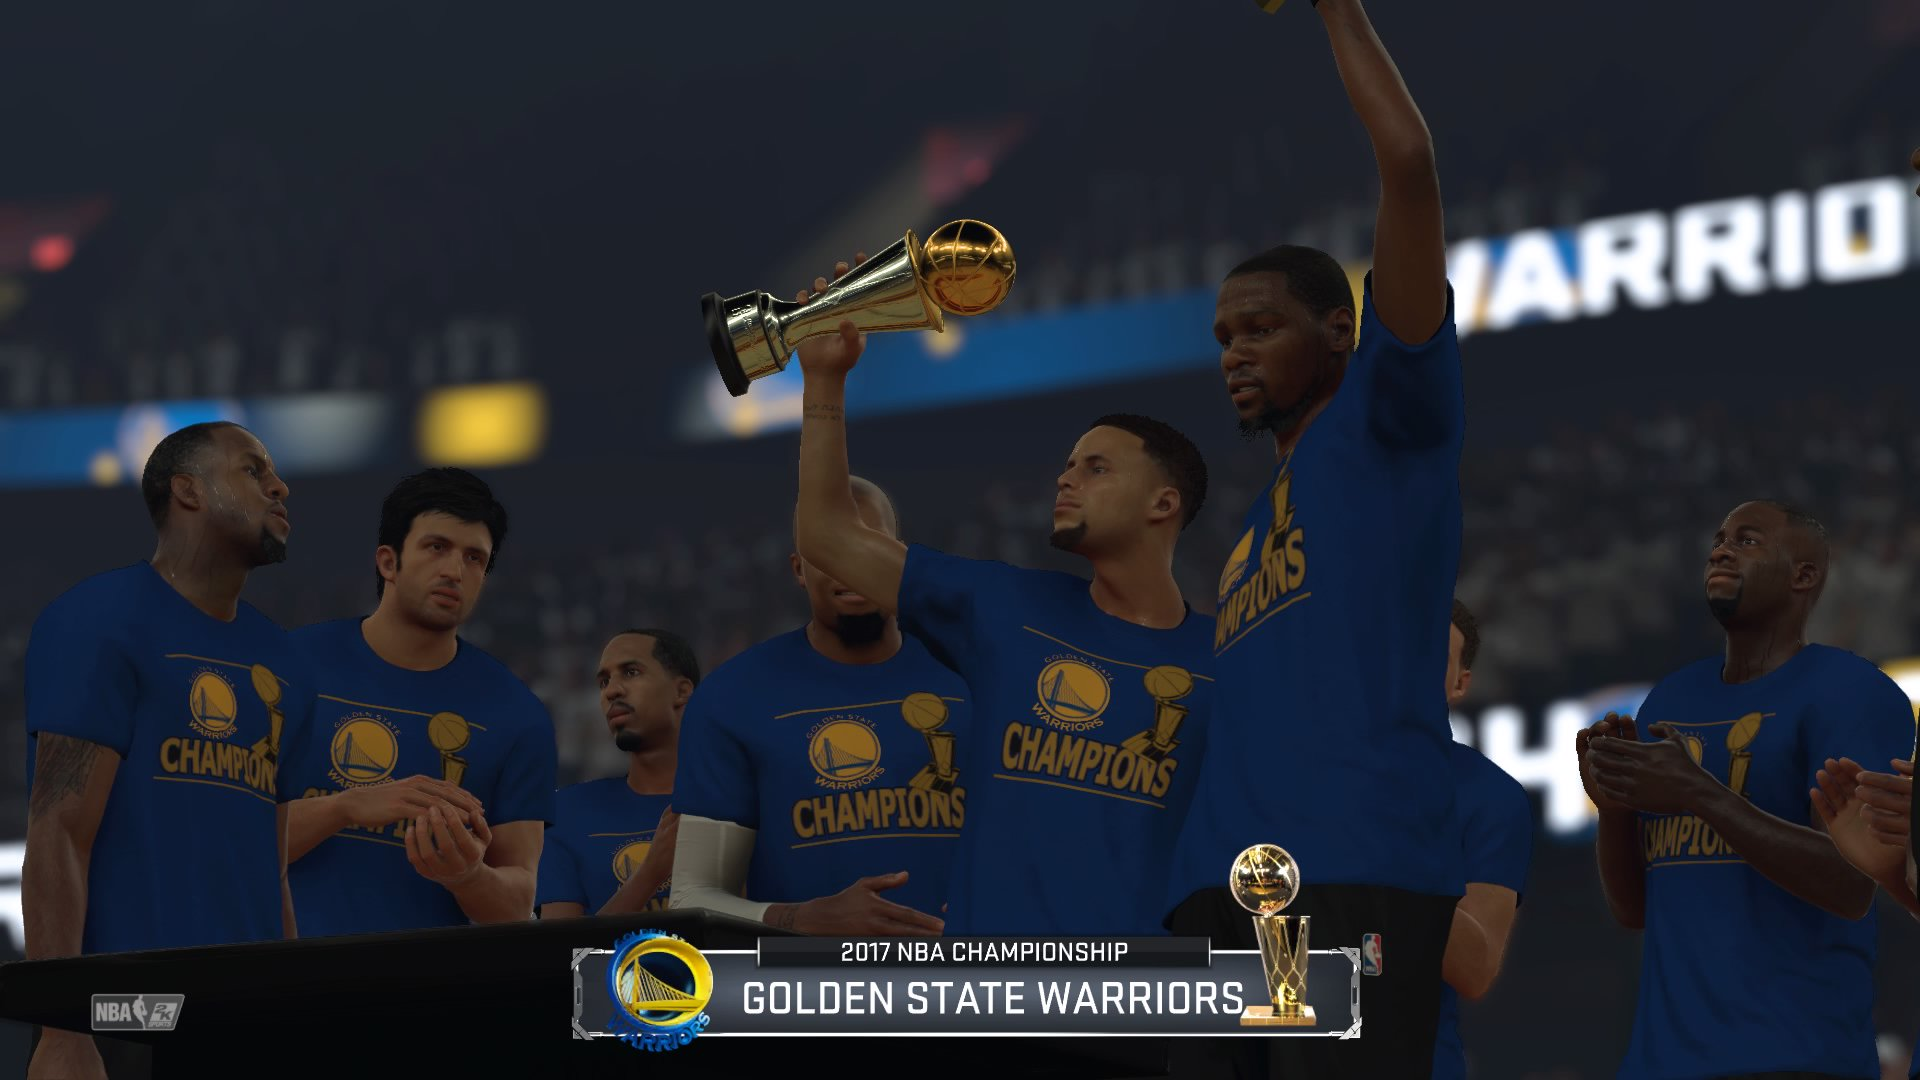 Miami heat lebron jamess vs golden state warriors nba2k17 miami - Cleveland As The Final Seconds Ticked Off And The Warriors Began Bouncing In Celebration On Their Bench Stephen Curry Looked Up And Saw Lebron James